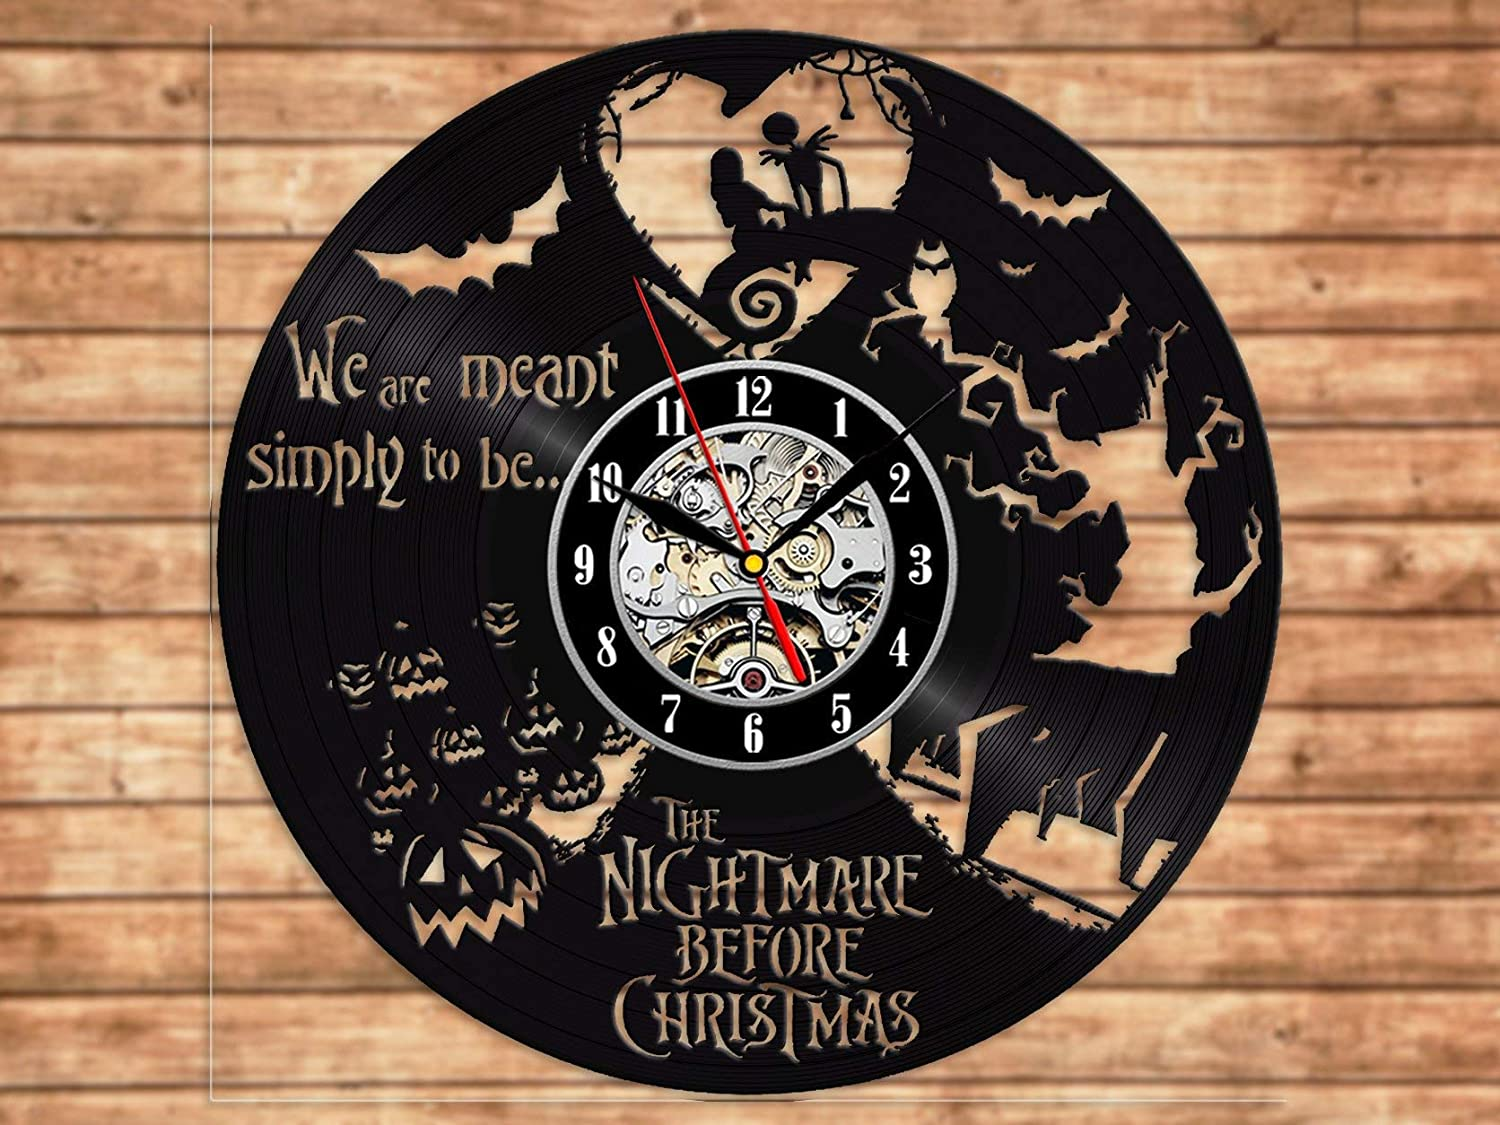 Home & Crafts The Nightmare Before Christmas Vinyl Clock Vinyl Record Wall Art Handmade Decor Best Original Vintage Gift for Fans Room Decoration Deco (One Pack)